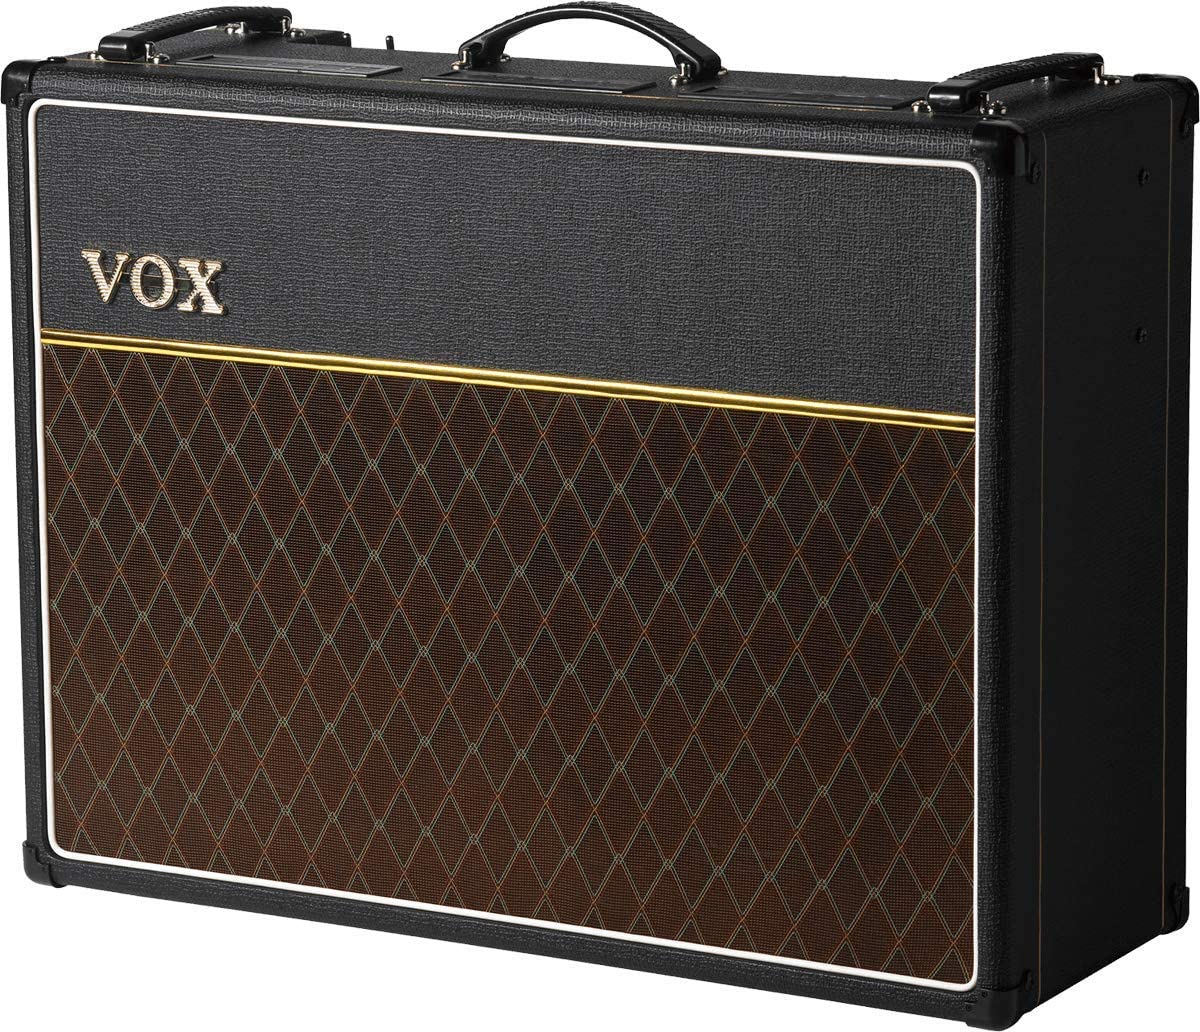 VOX AC15С2 review